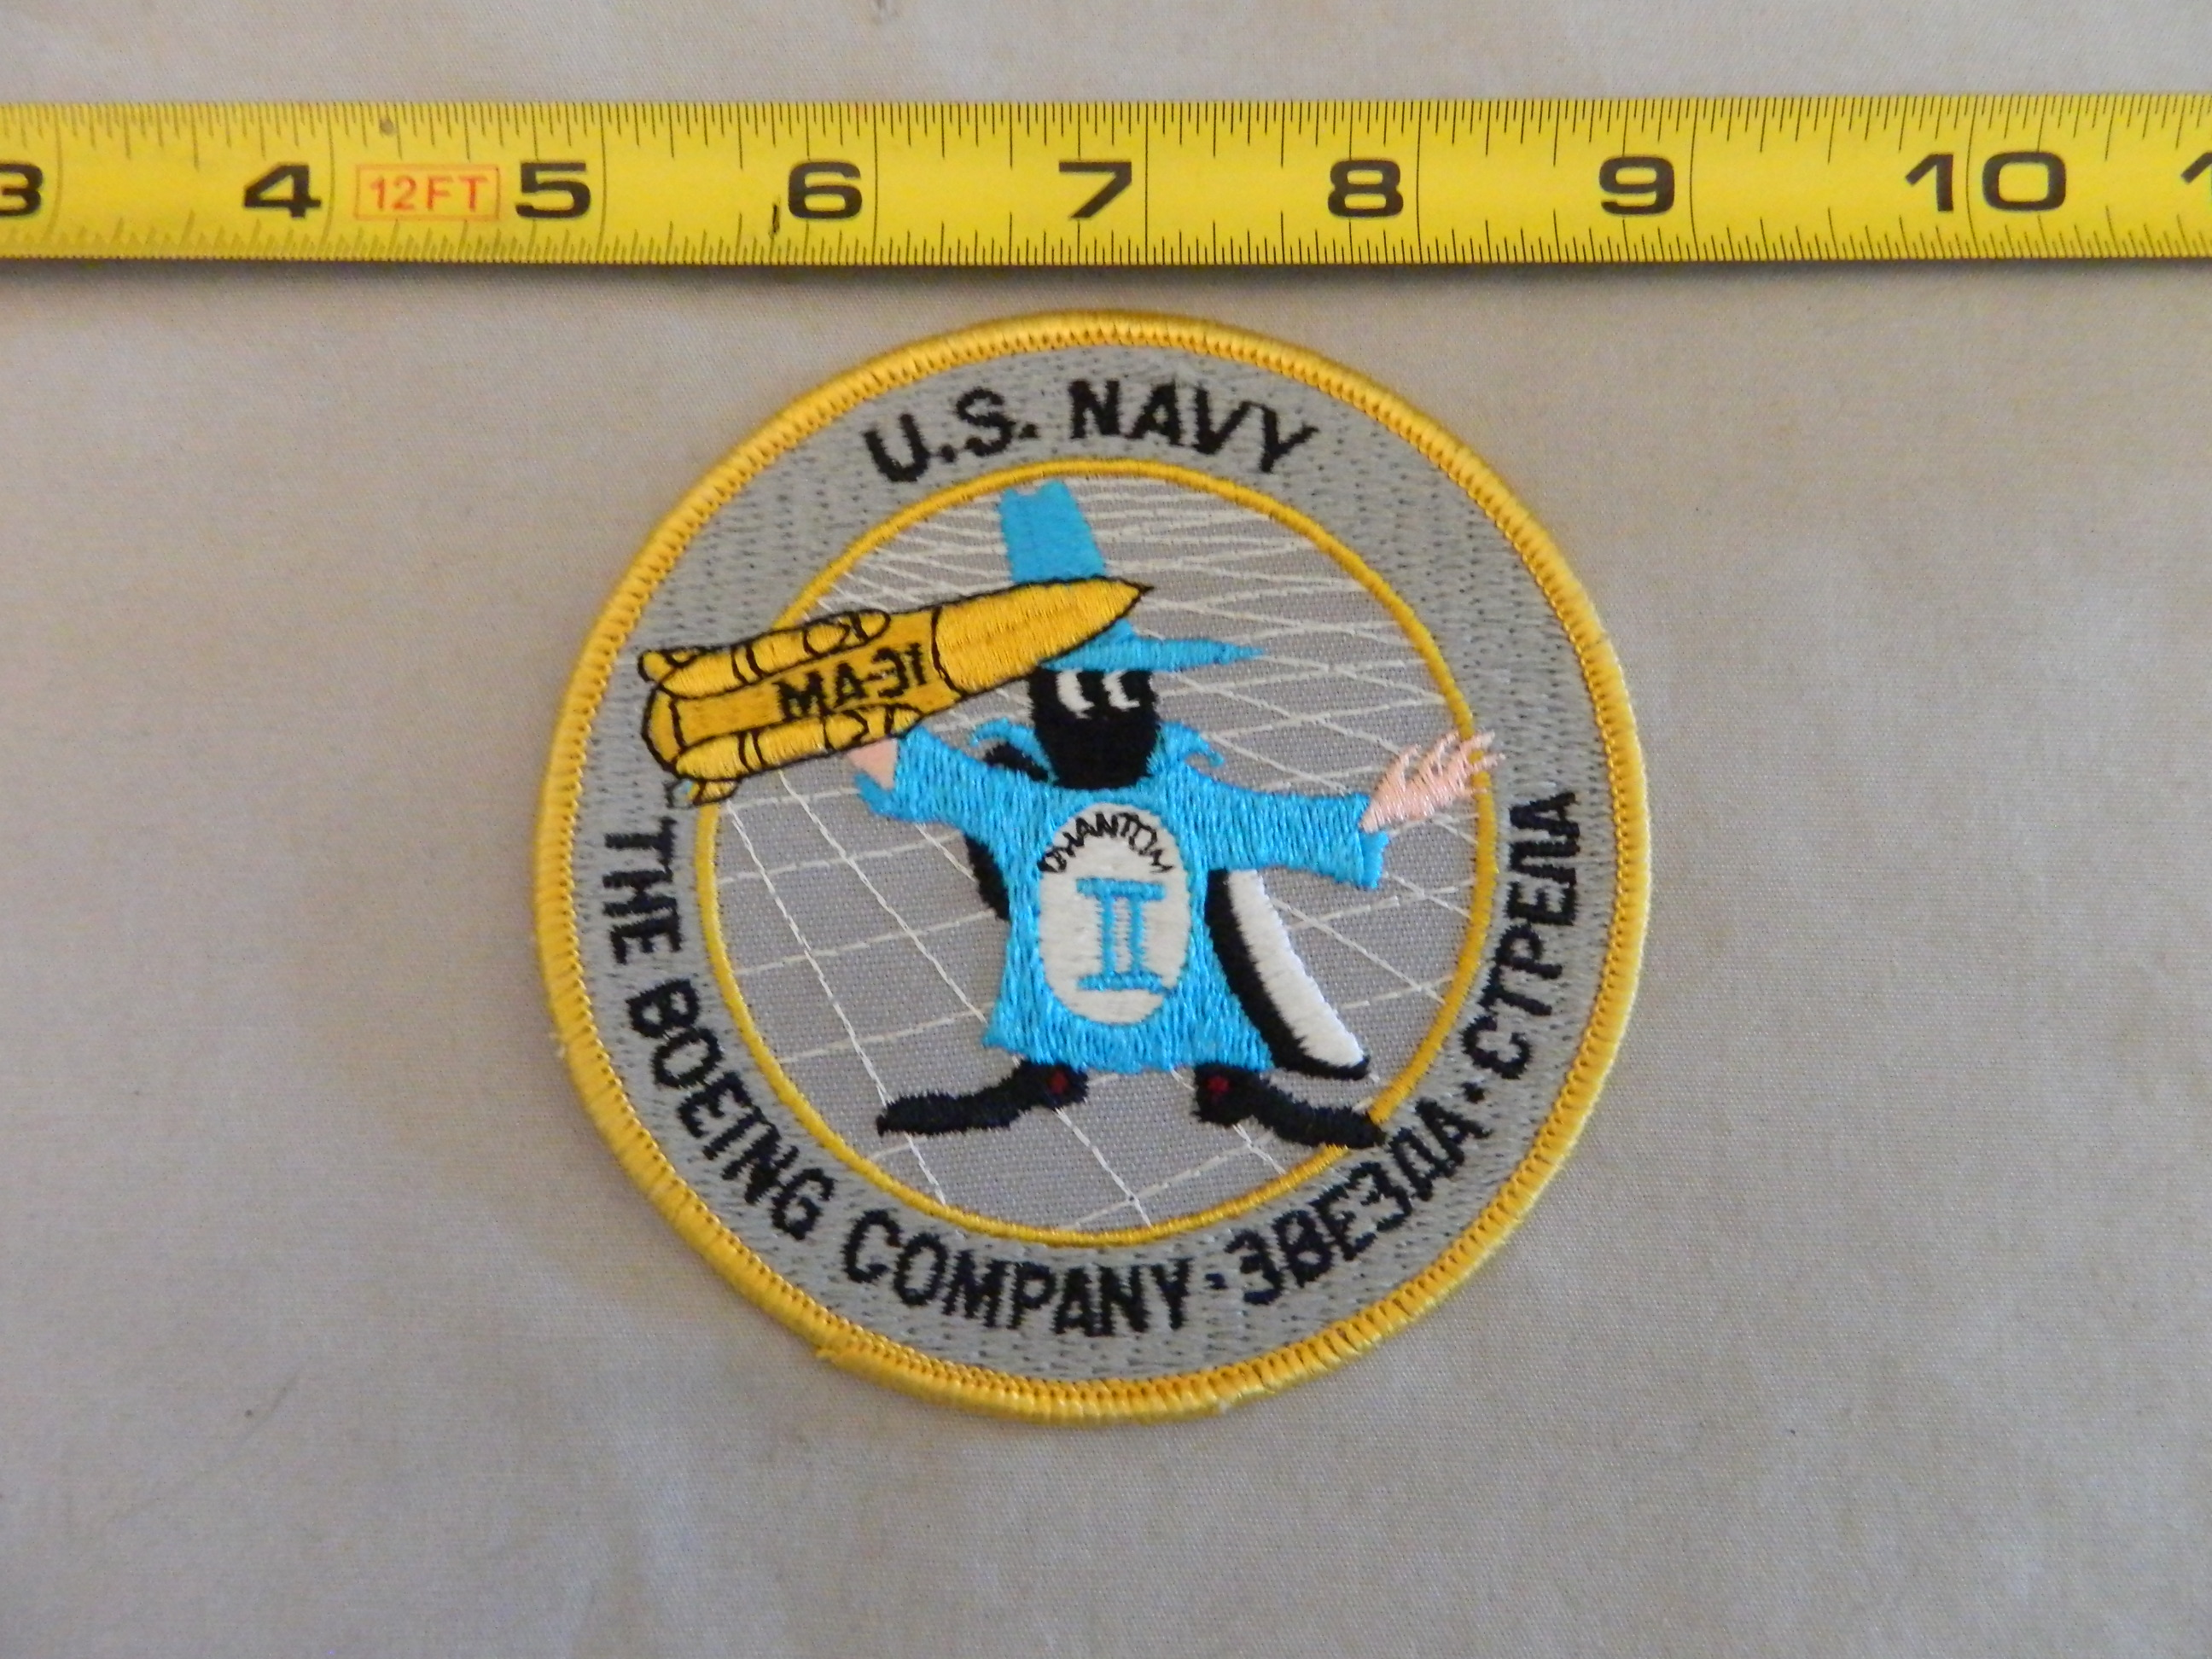 U.S. Navy- The Boeing Co. 3BE3NA-CTPENA Patch